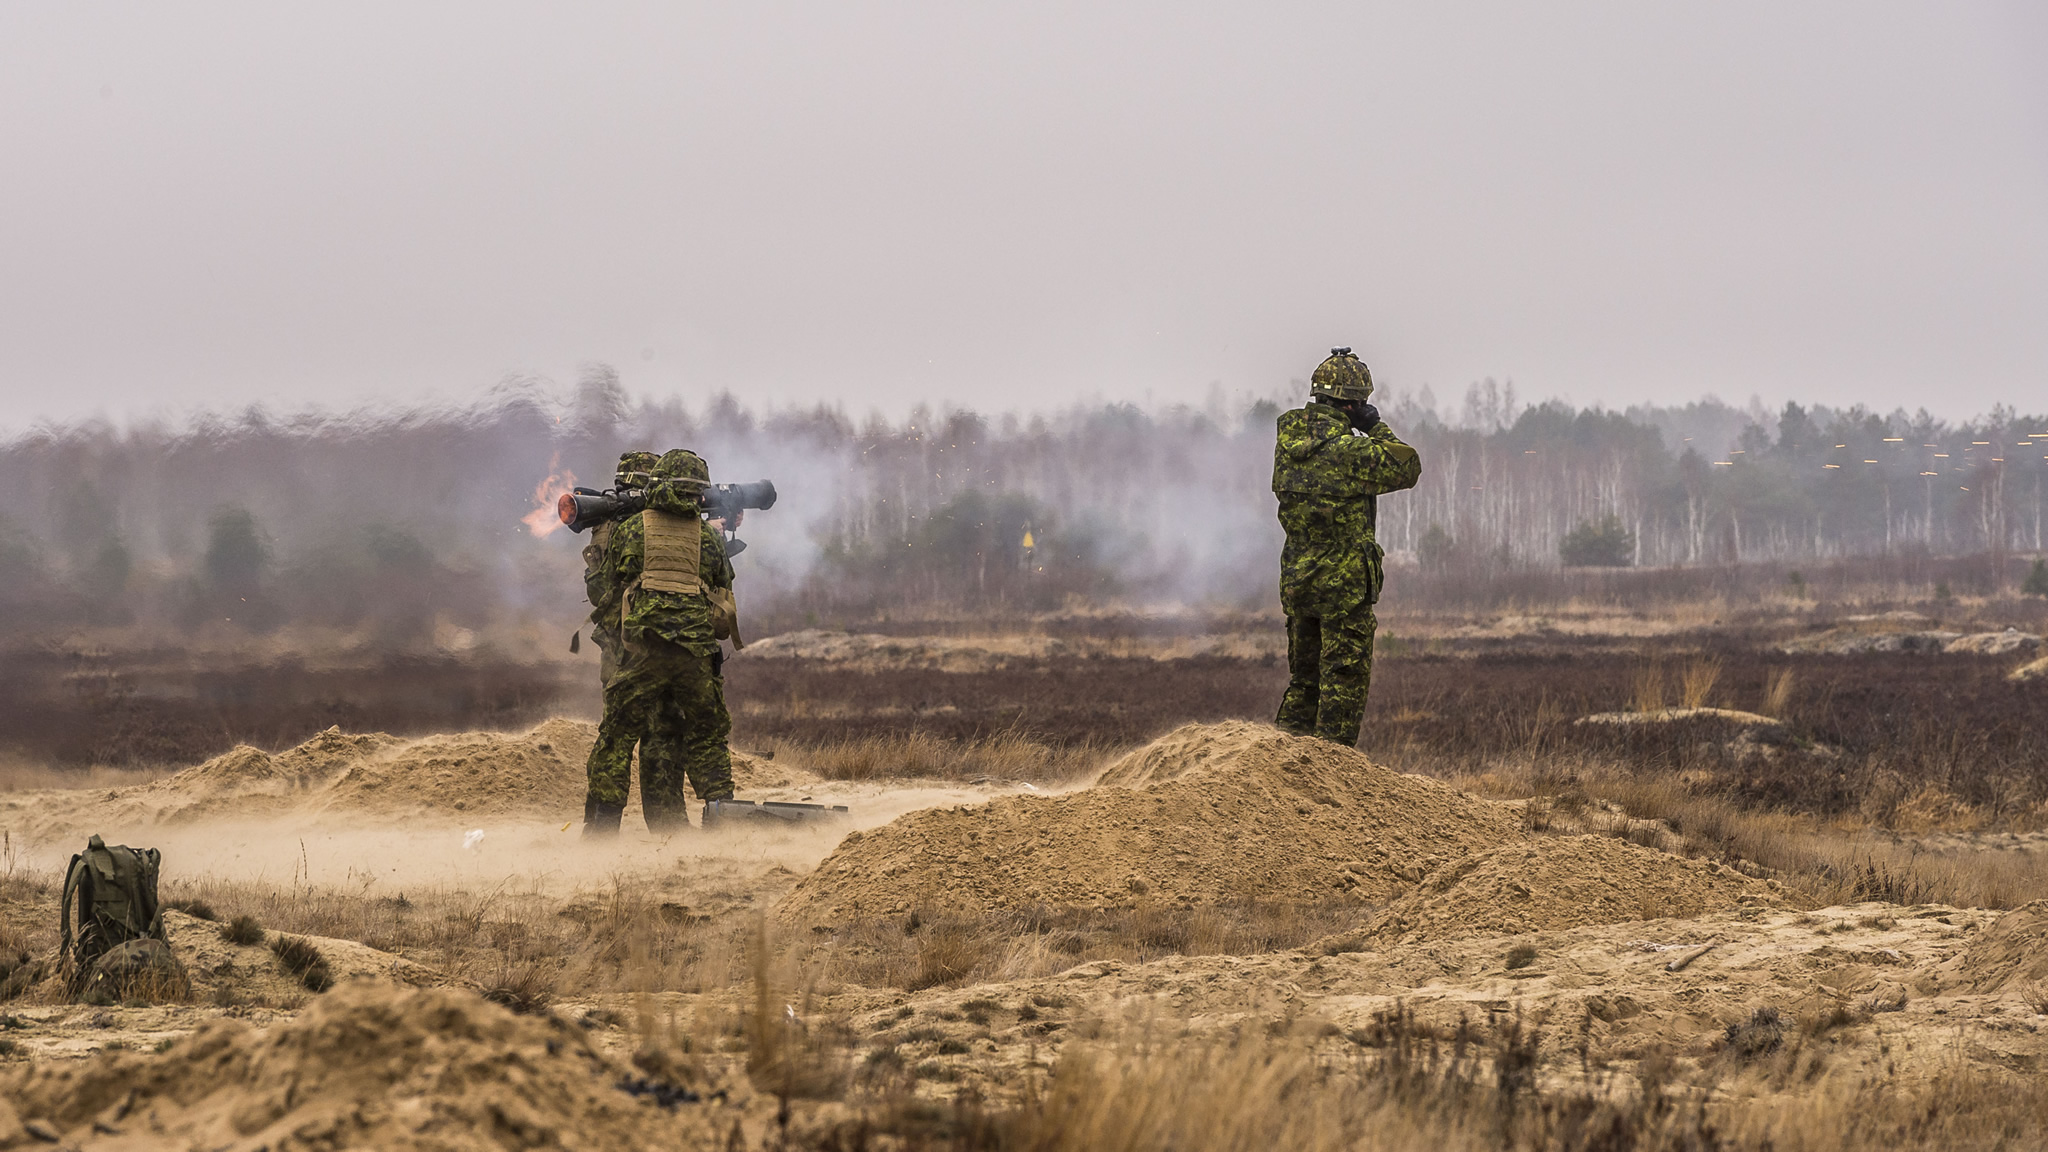 Canadian Armed Forces members fire a Carl Gustav recoilless rifle during an exercise at Nowa Dęba Training Center in Nowa Dęba, Poland on December 8, 2015 during Operation REASSURANCE. (Photo: Corporal Nathan Moulton, Land Task Force Imagery, OP REASSURANCE)